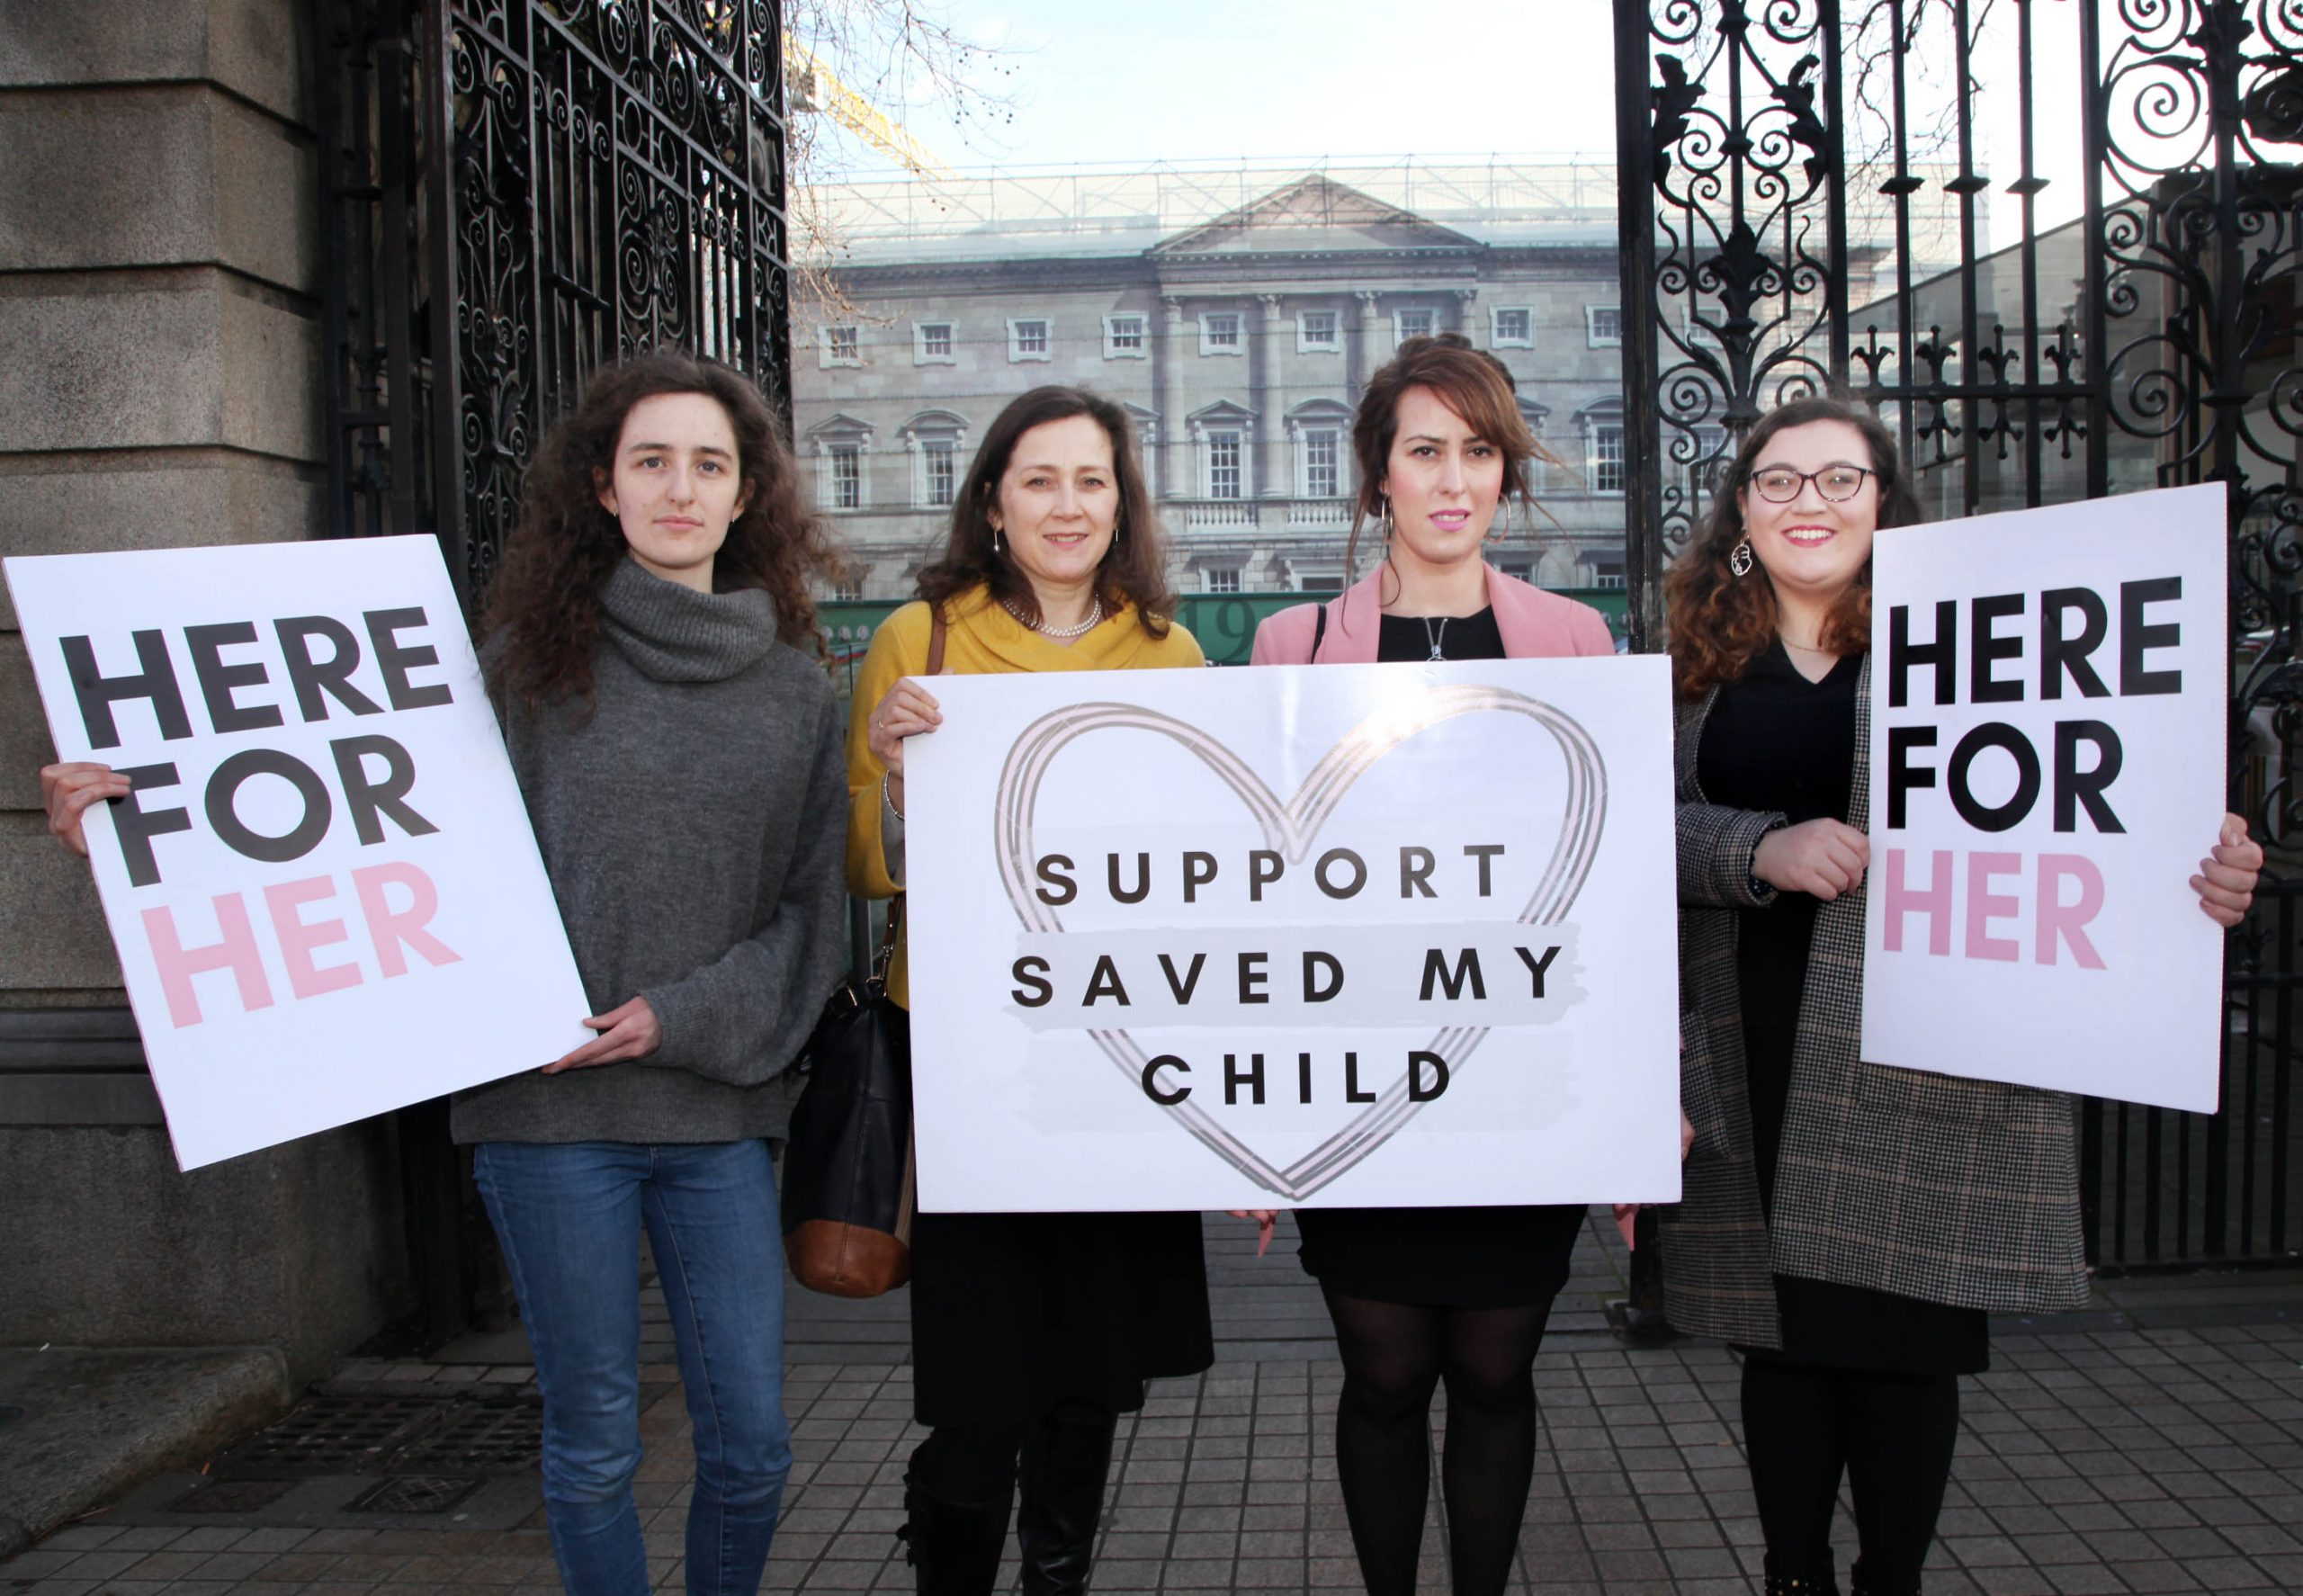 """15.06.2020  Plan to introduce """"Exclusion Zones"""" and silence on alternatives to abortion makes clear priorities in Programme for Government – PLC"""